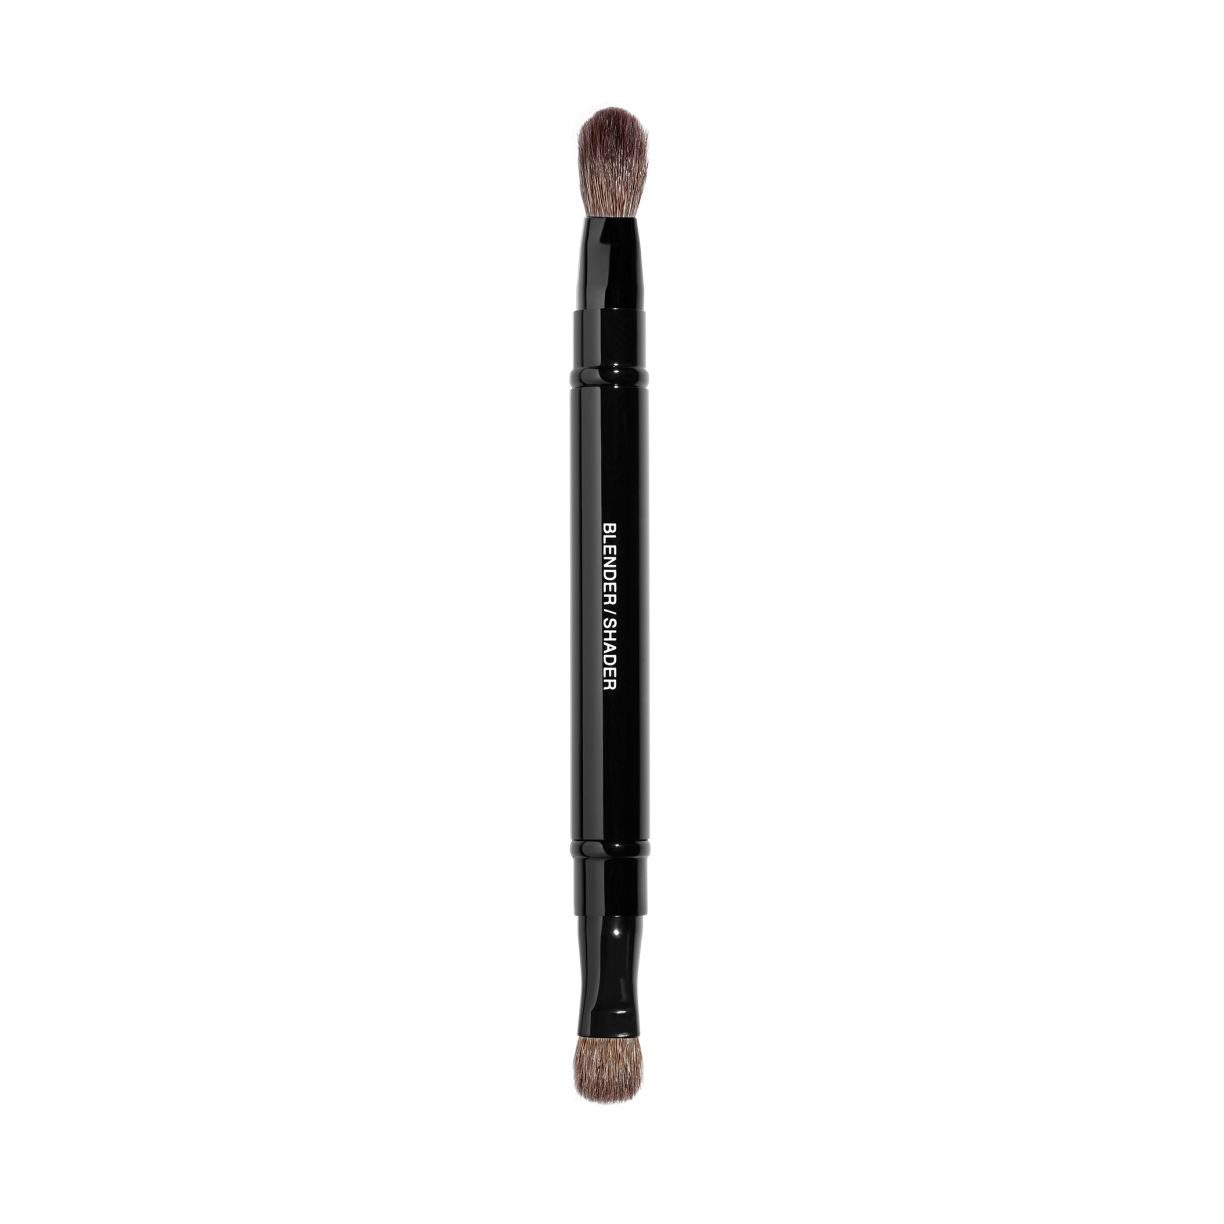 RETRACTABLE DUAL-TIP EYESHADOW BRUSH 伸縮雙頭眼影掃